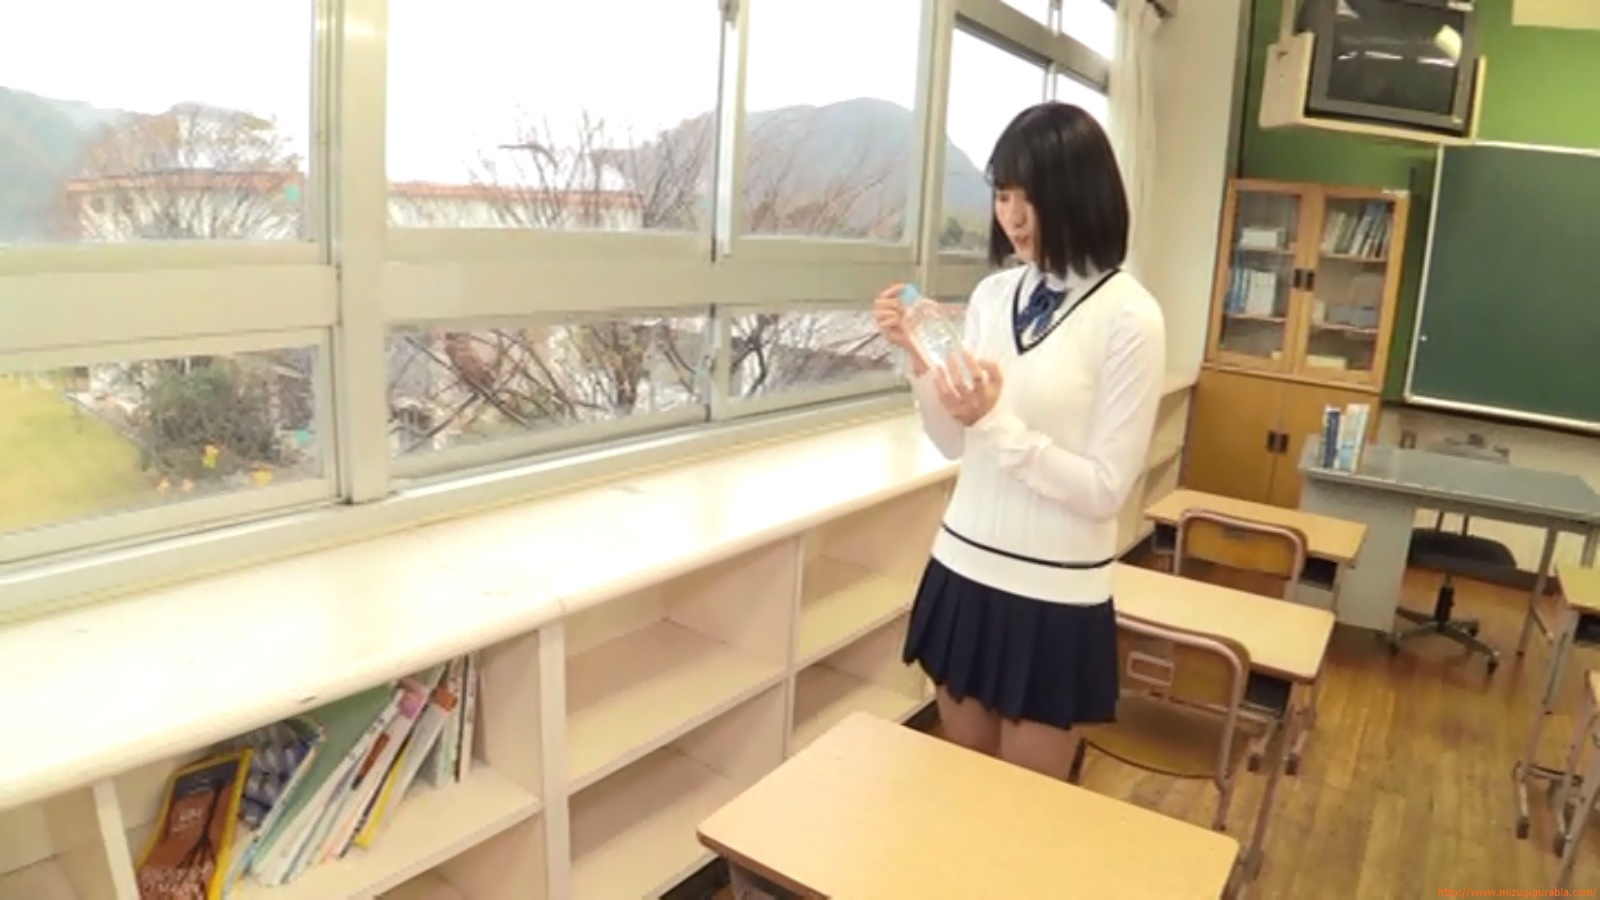 Two-person classroom091